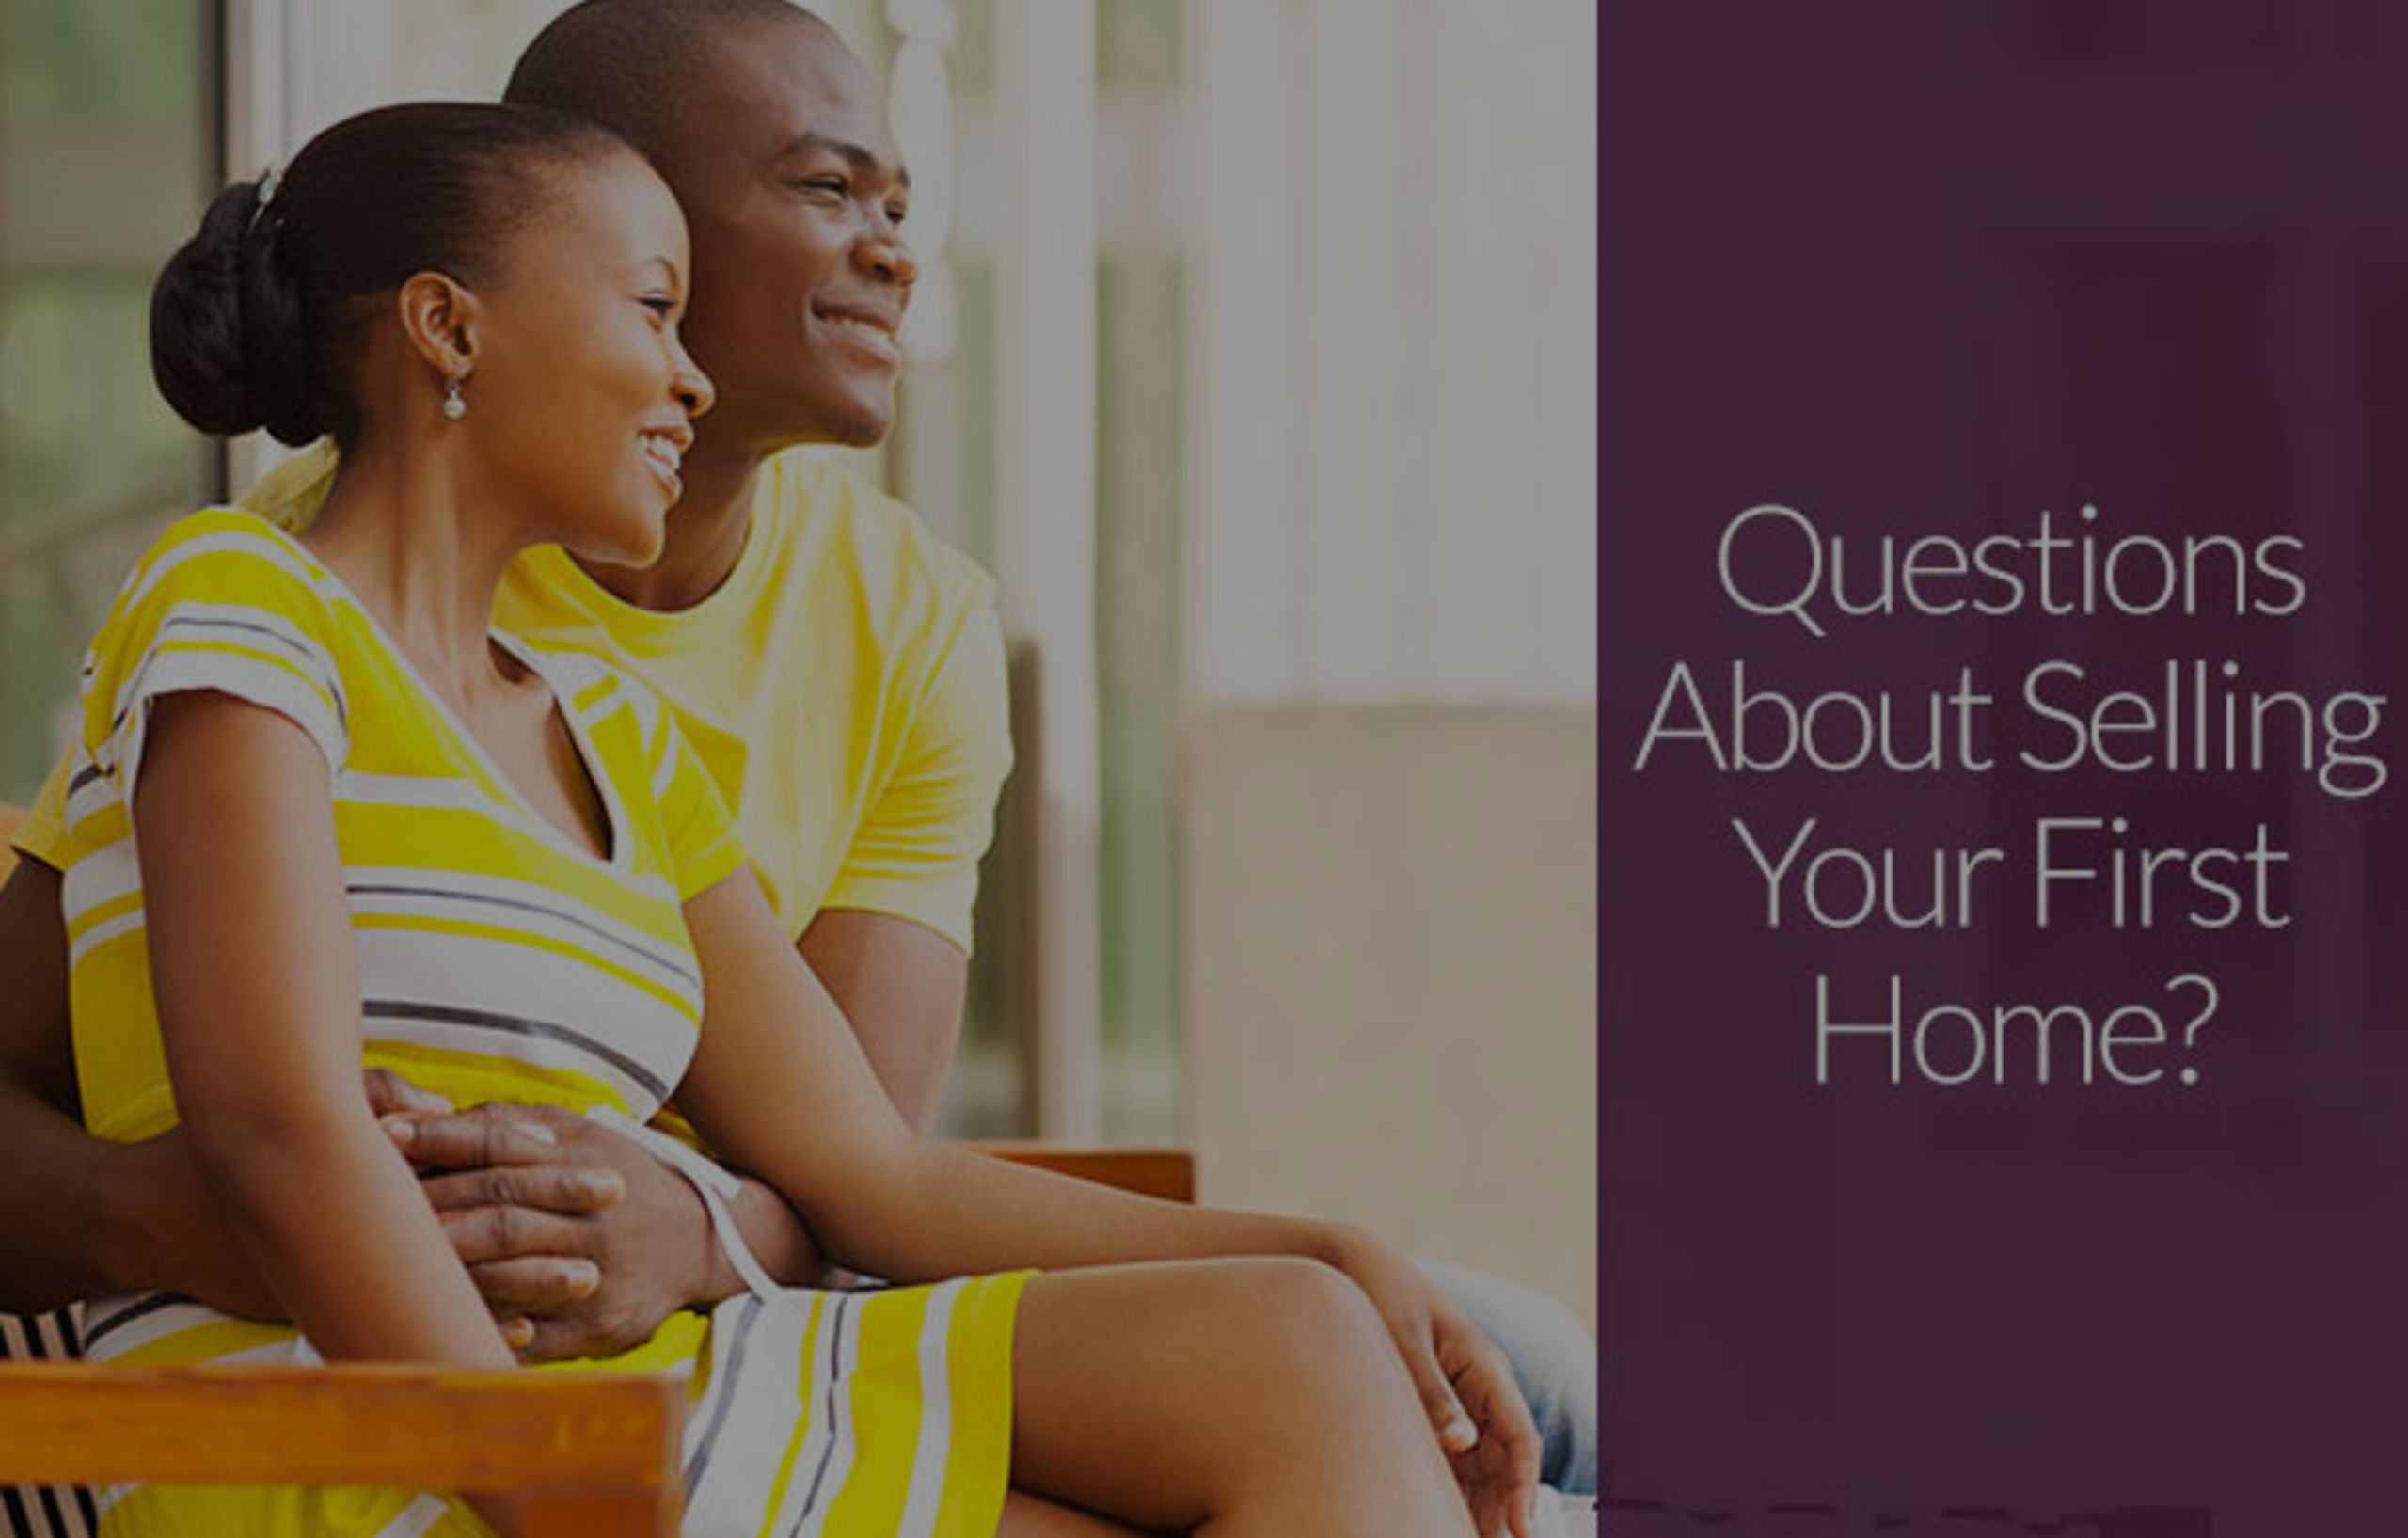 Questions About Selling Your First Home? We Have Answers